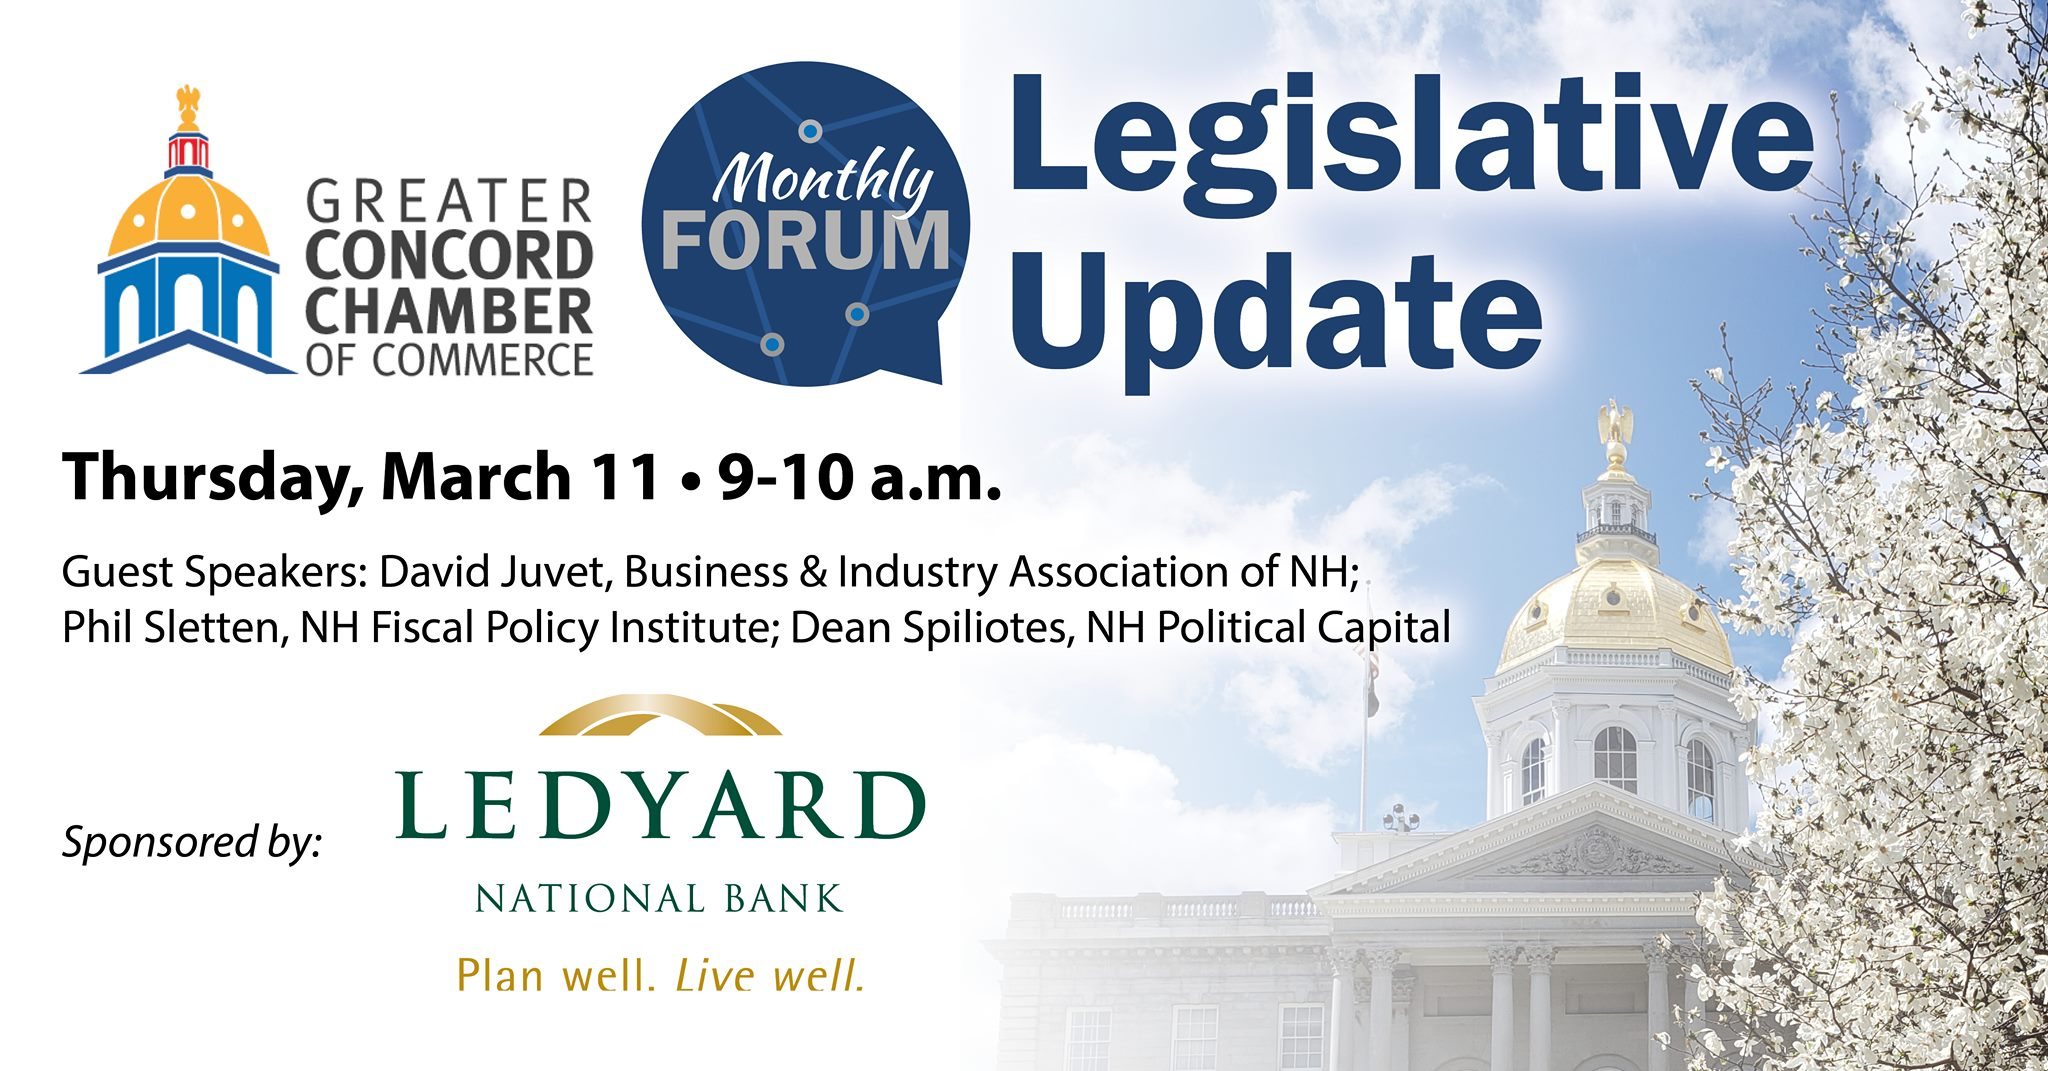 Legislative Update forum 2021